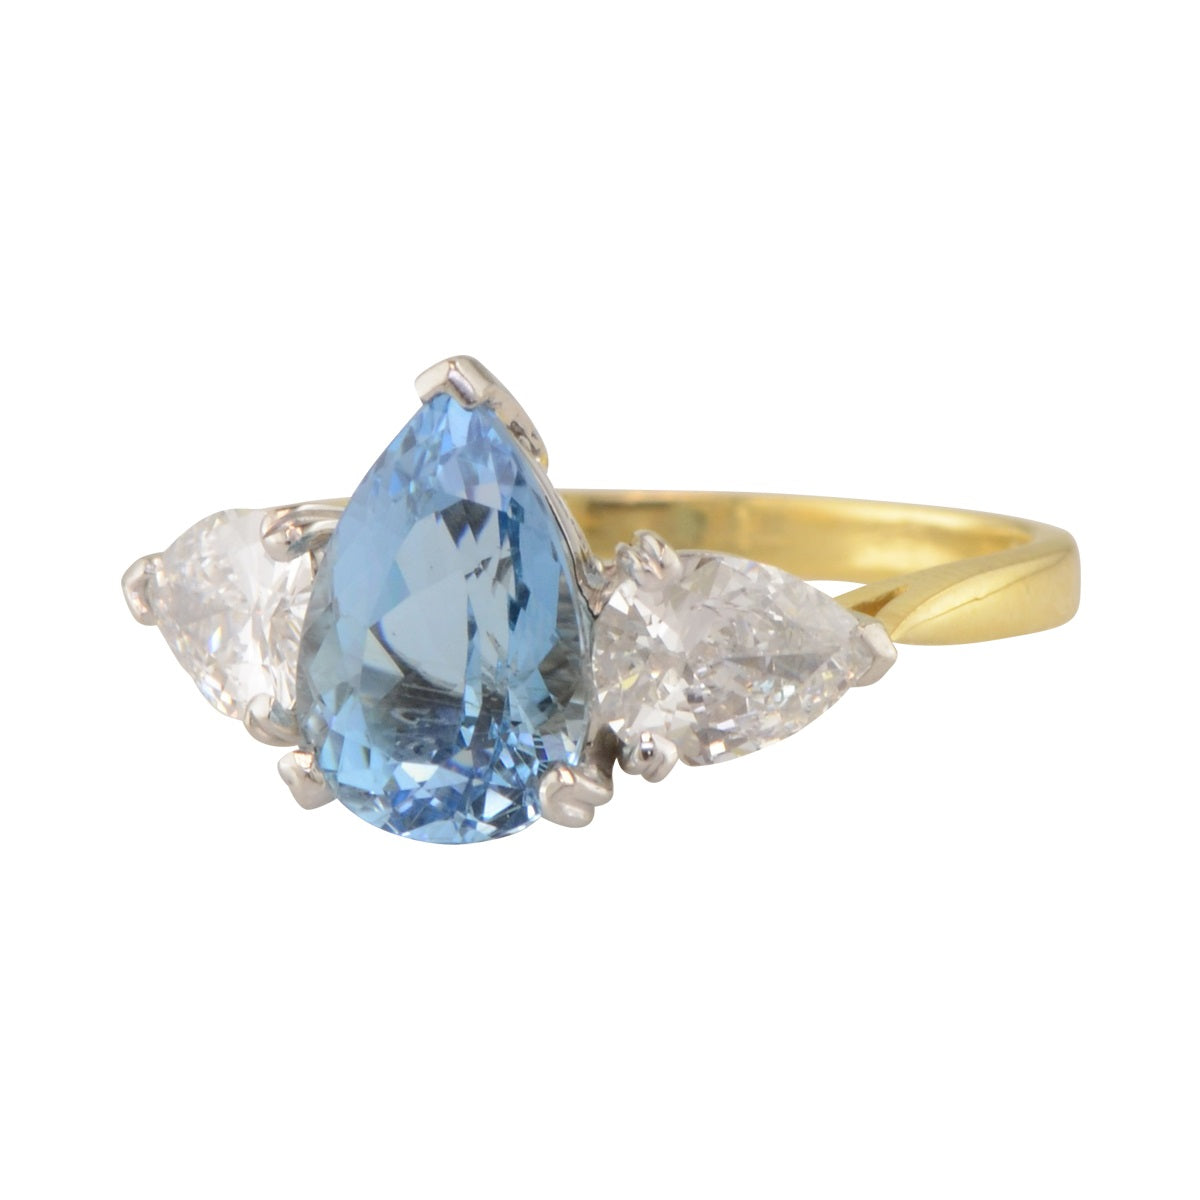 Pear Shaped Aquamarine Ring 'Bridgette' with Pear Shaped Diamond Sides.